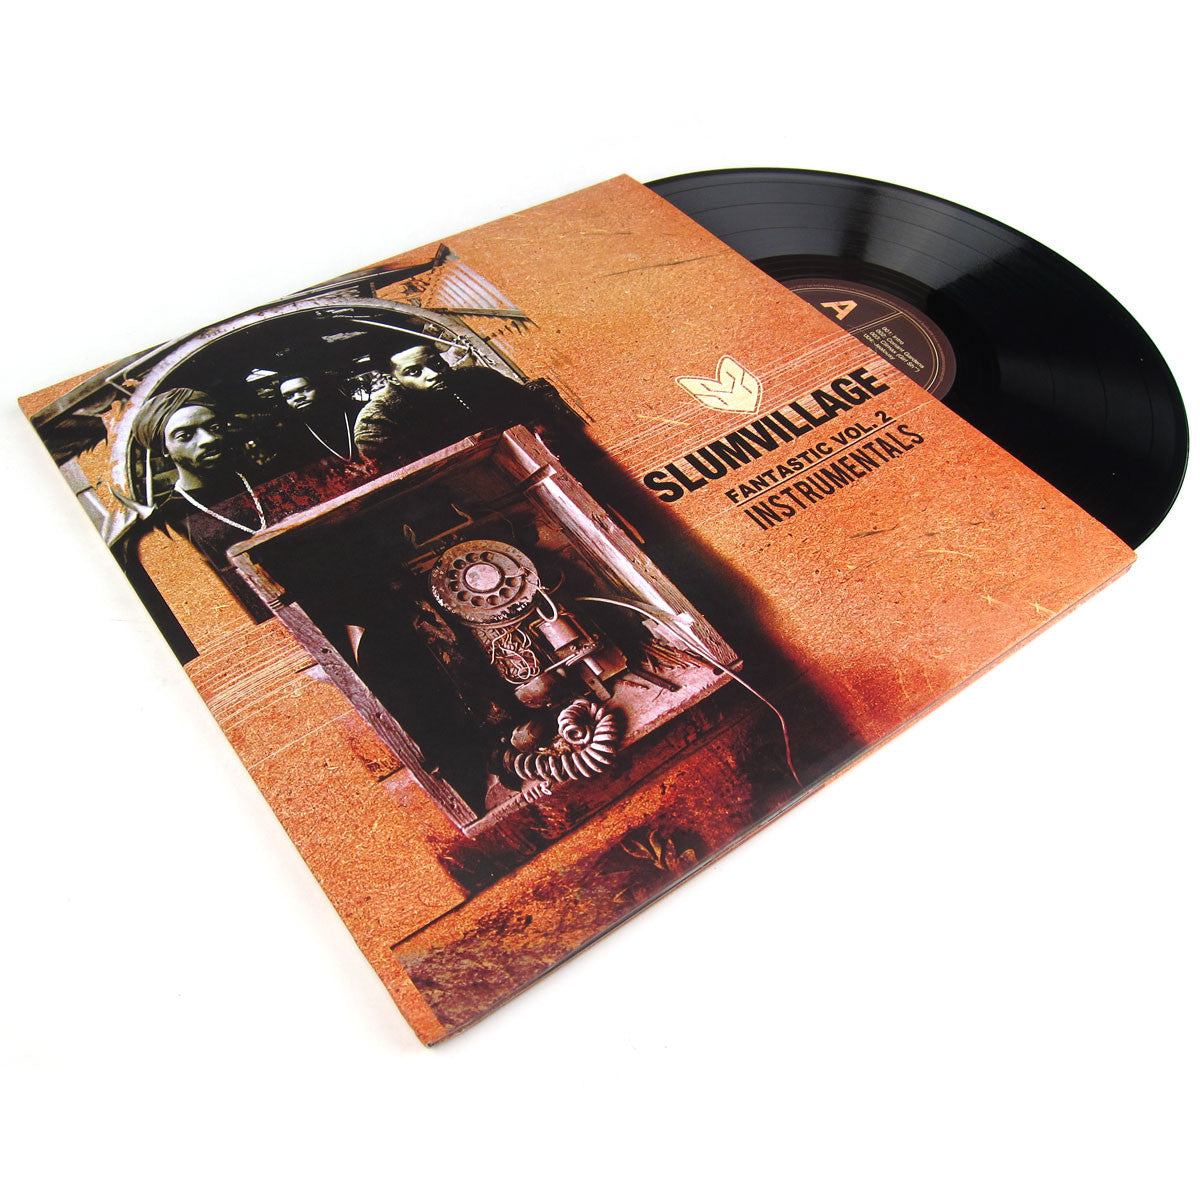 Slum Village: Fantastic Vol.2 Instrumentals 3LP